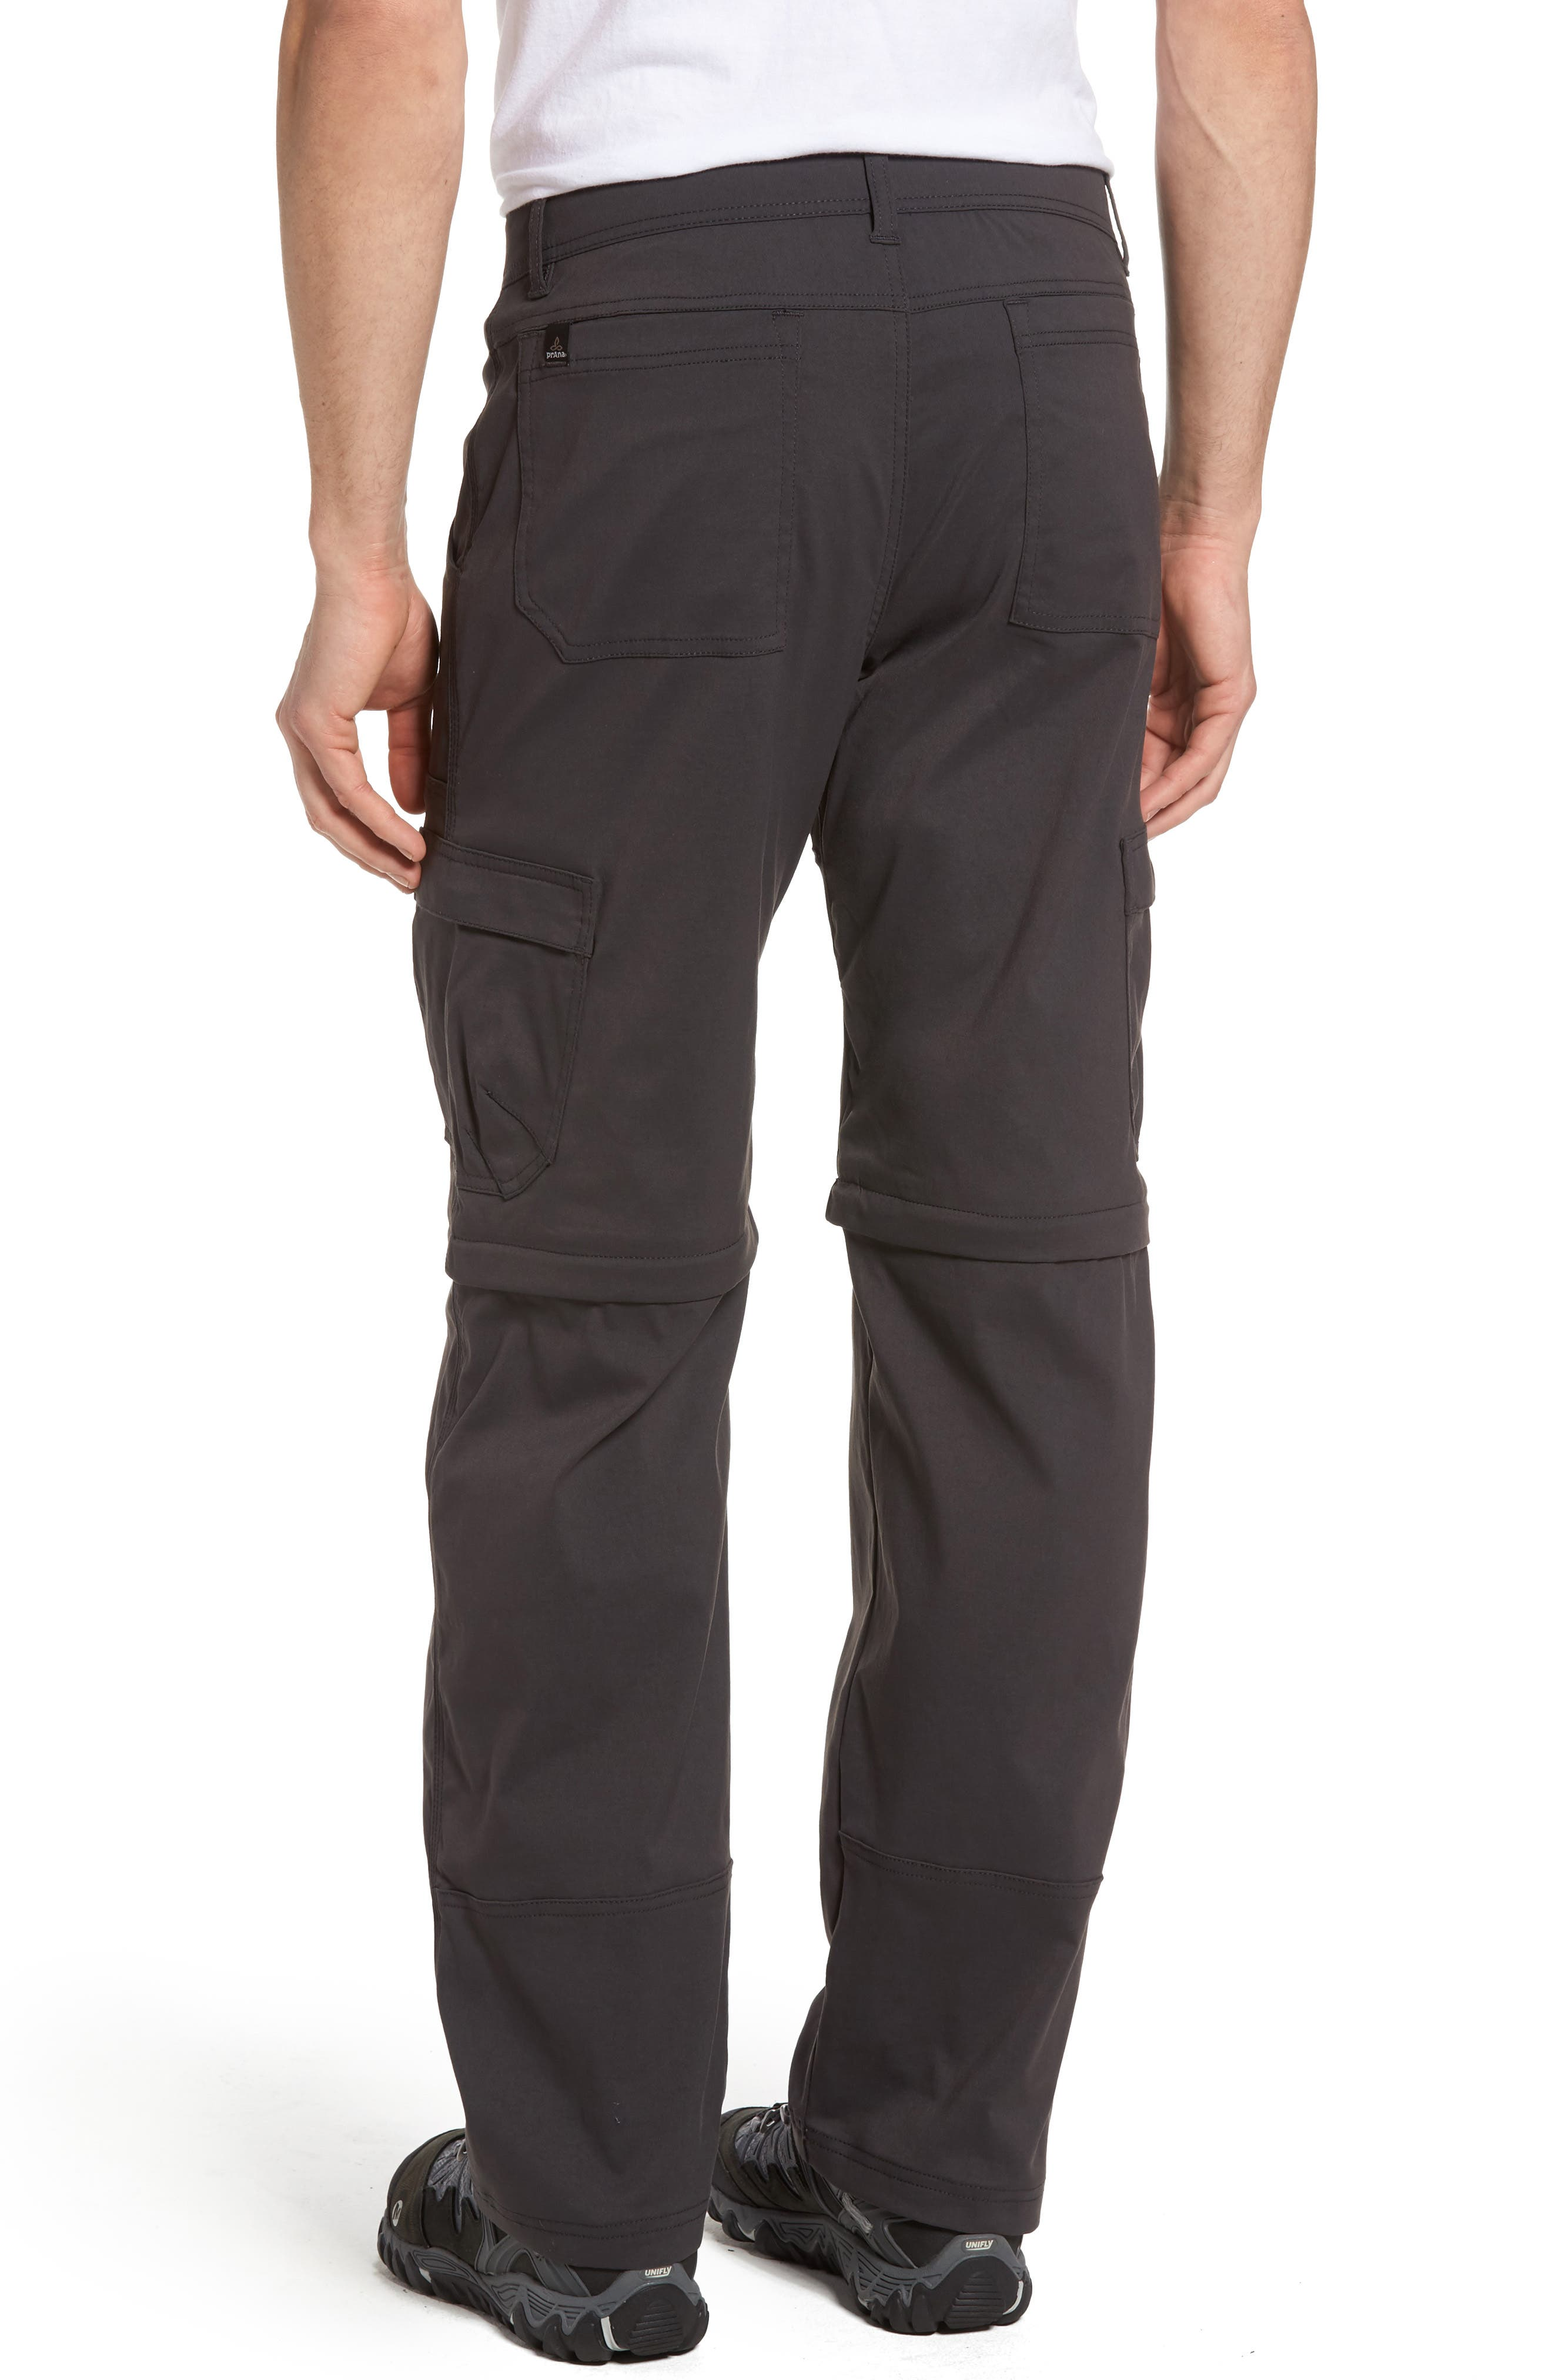 Zion Stretch Convertible Cargo Hiking Pants,                             Alternate thumbnail 2, color,                             010